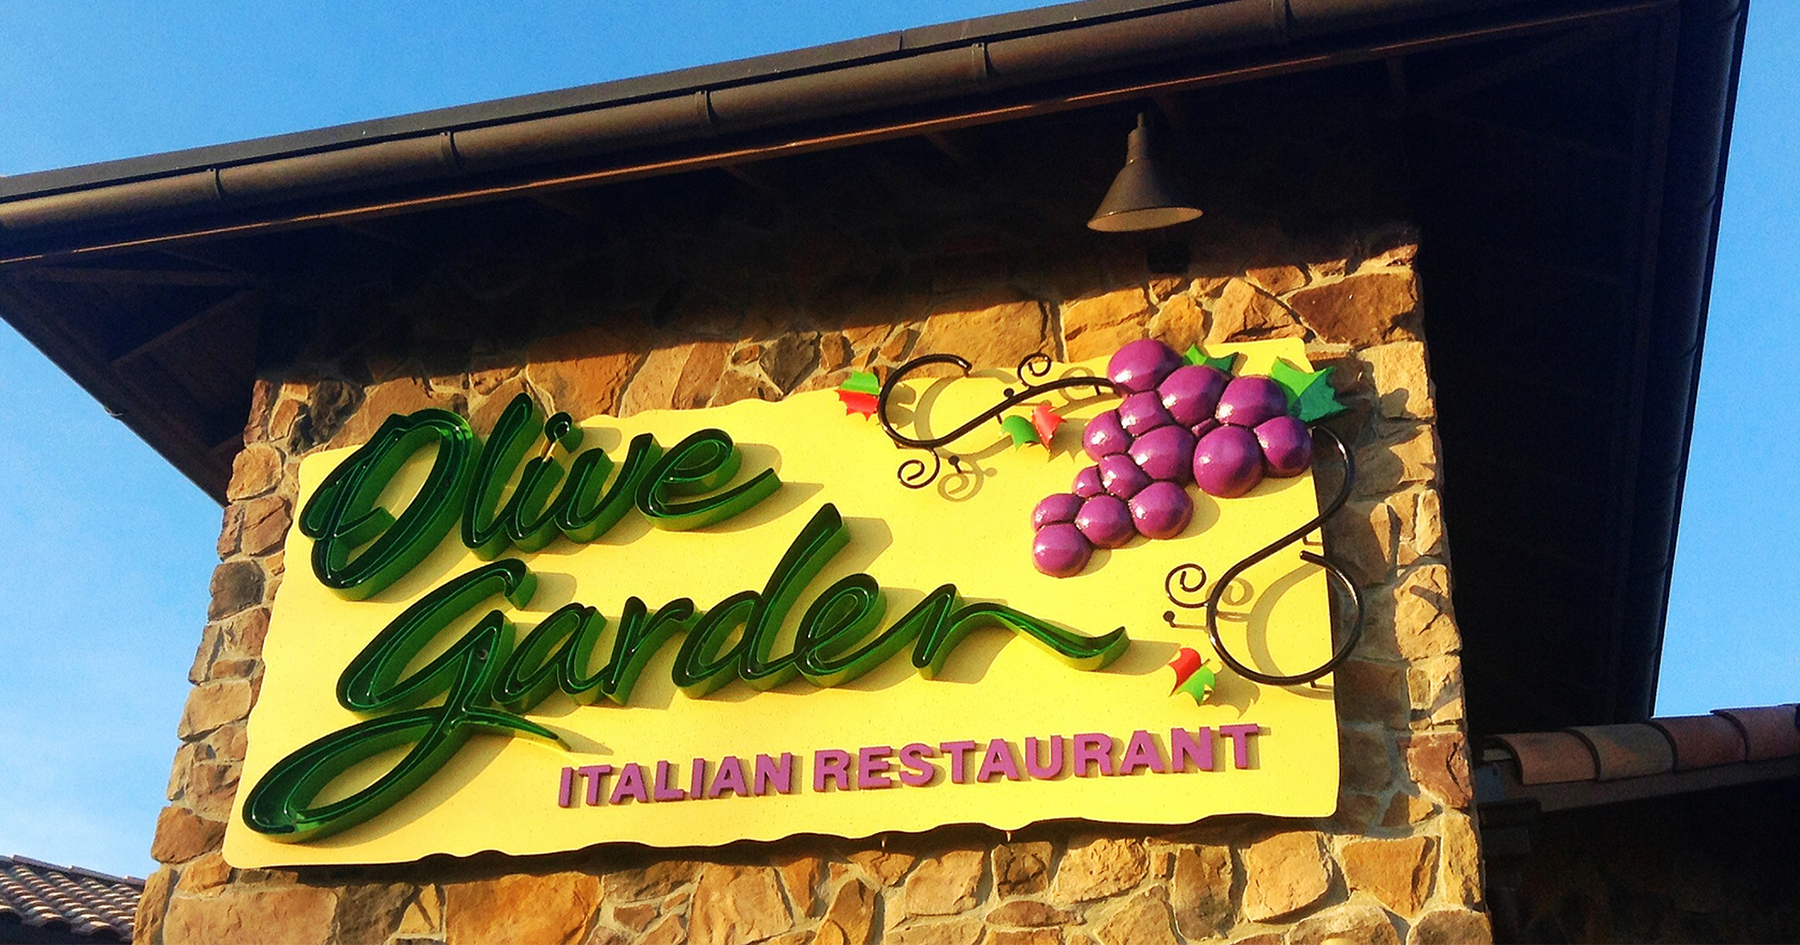 Darden Restaurant Workers Face Fees With Payroll Cards Attn